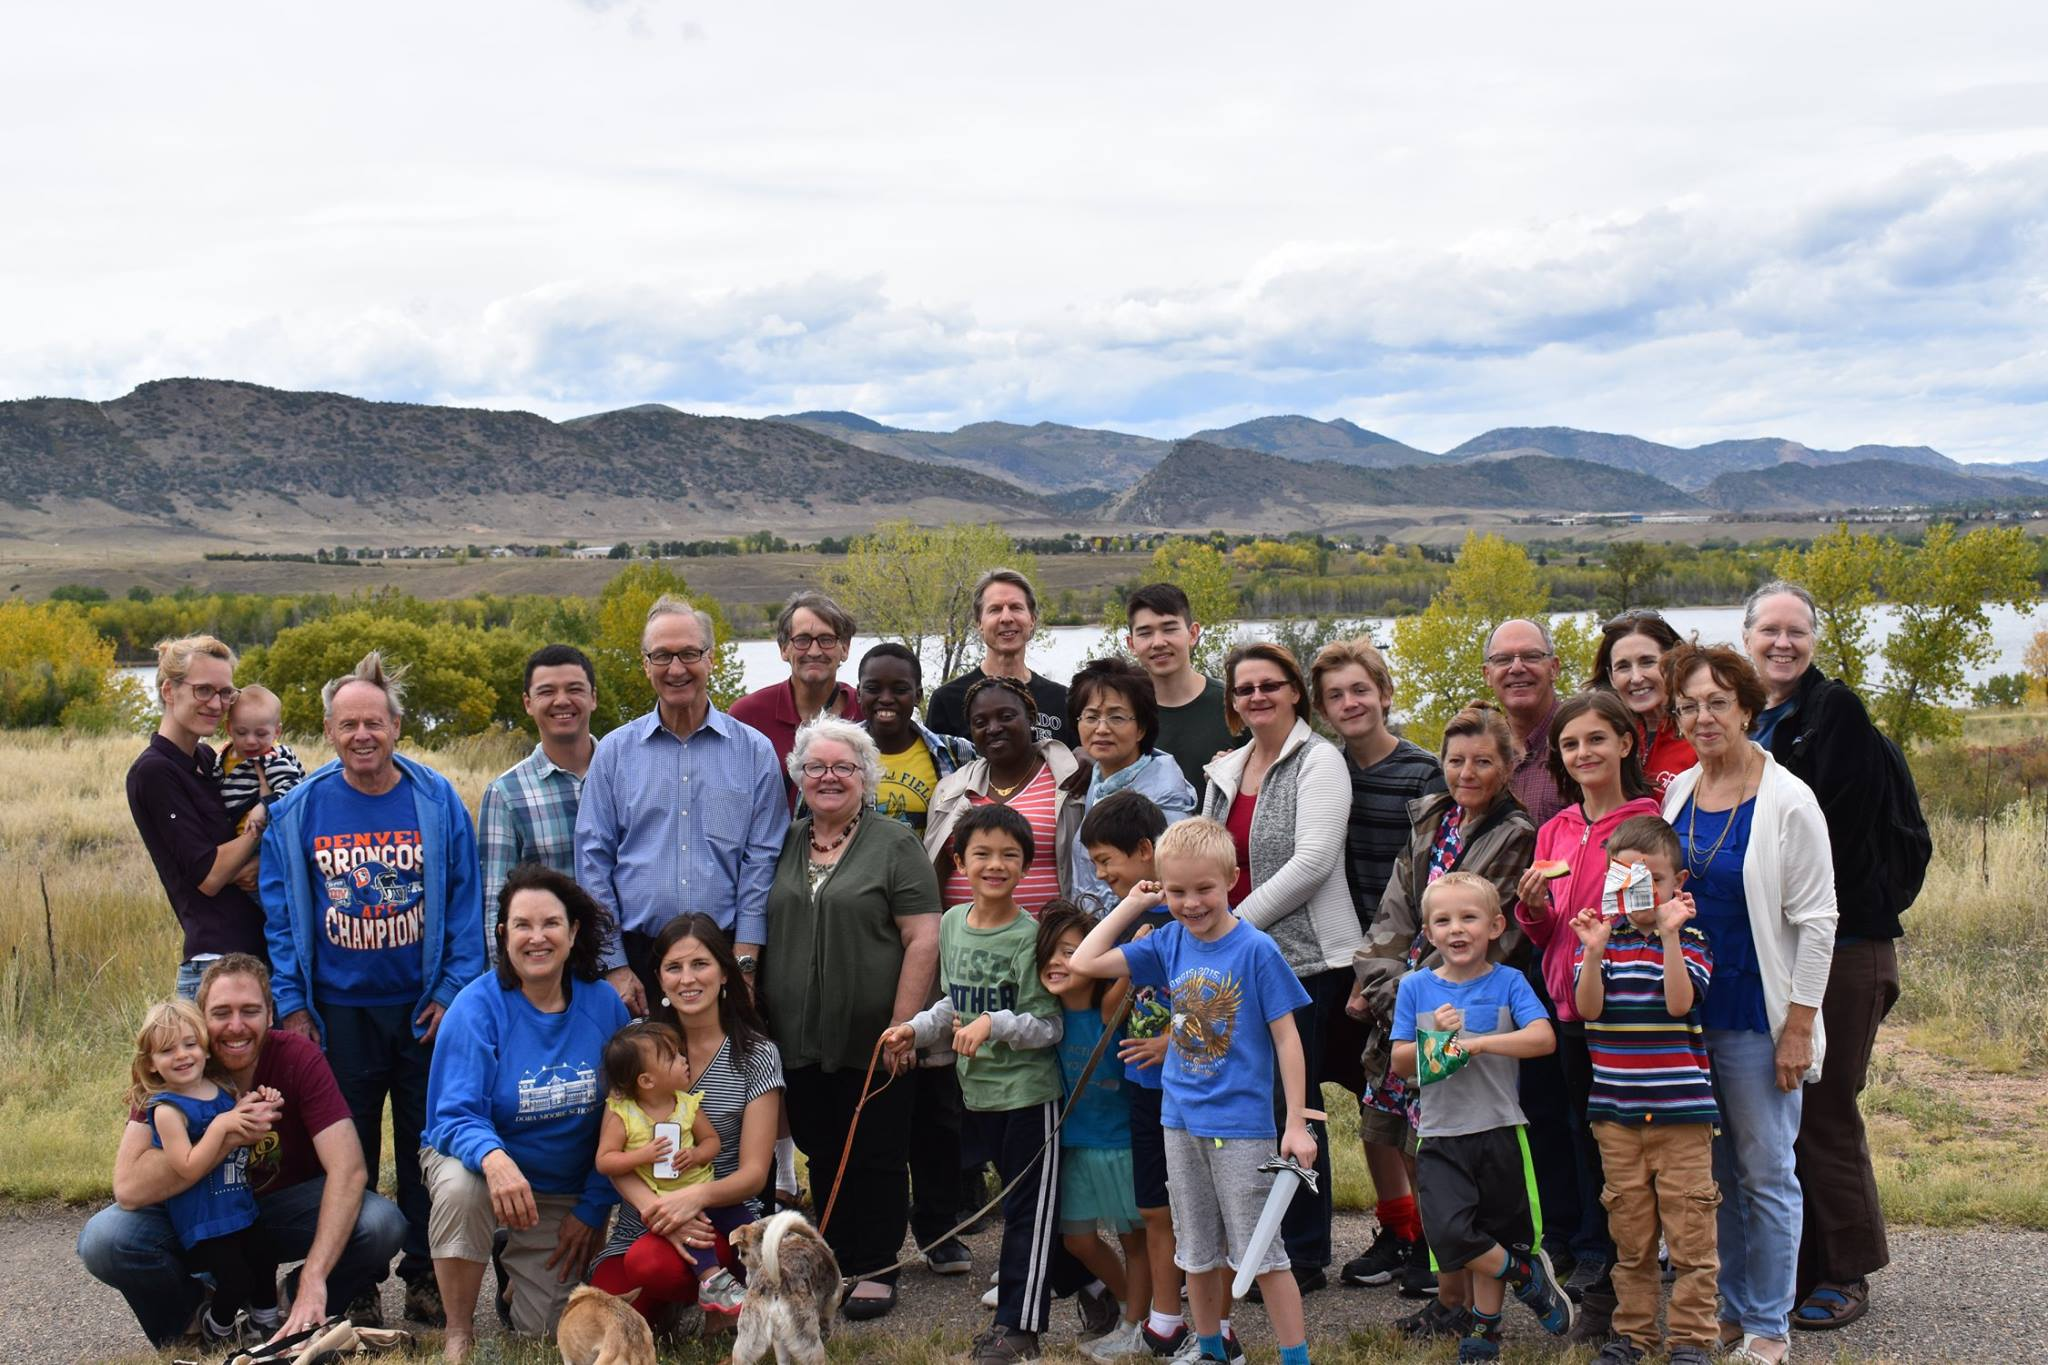 Group photo after the picnic at Chatfield State Park